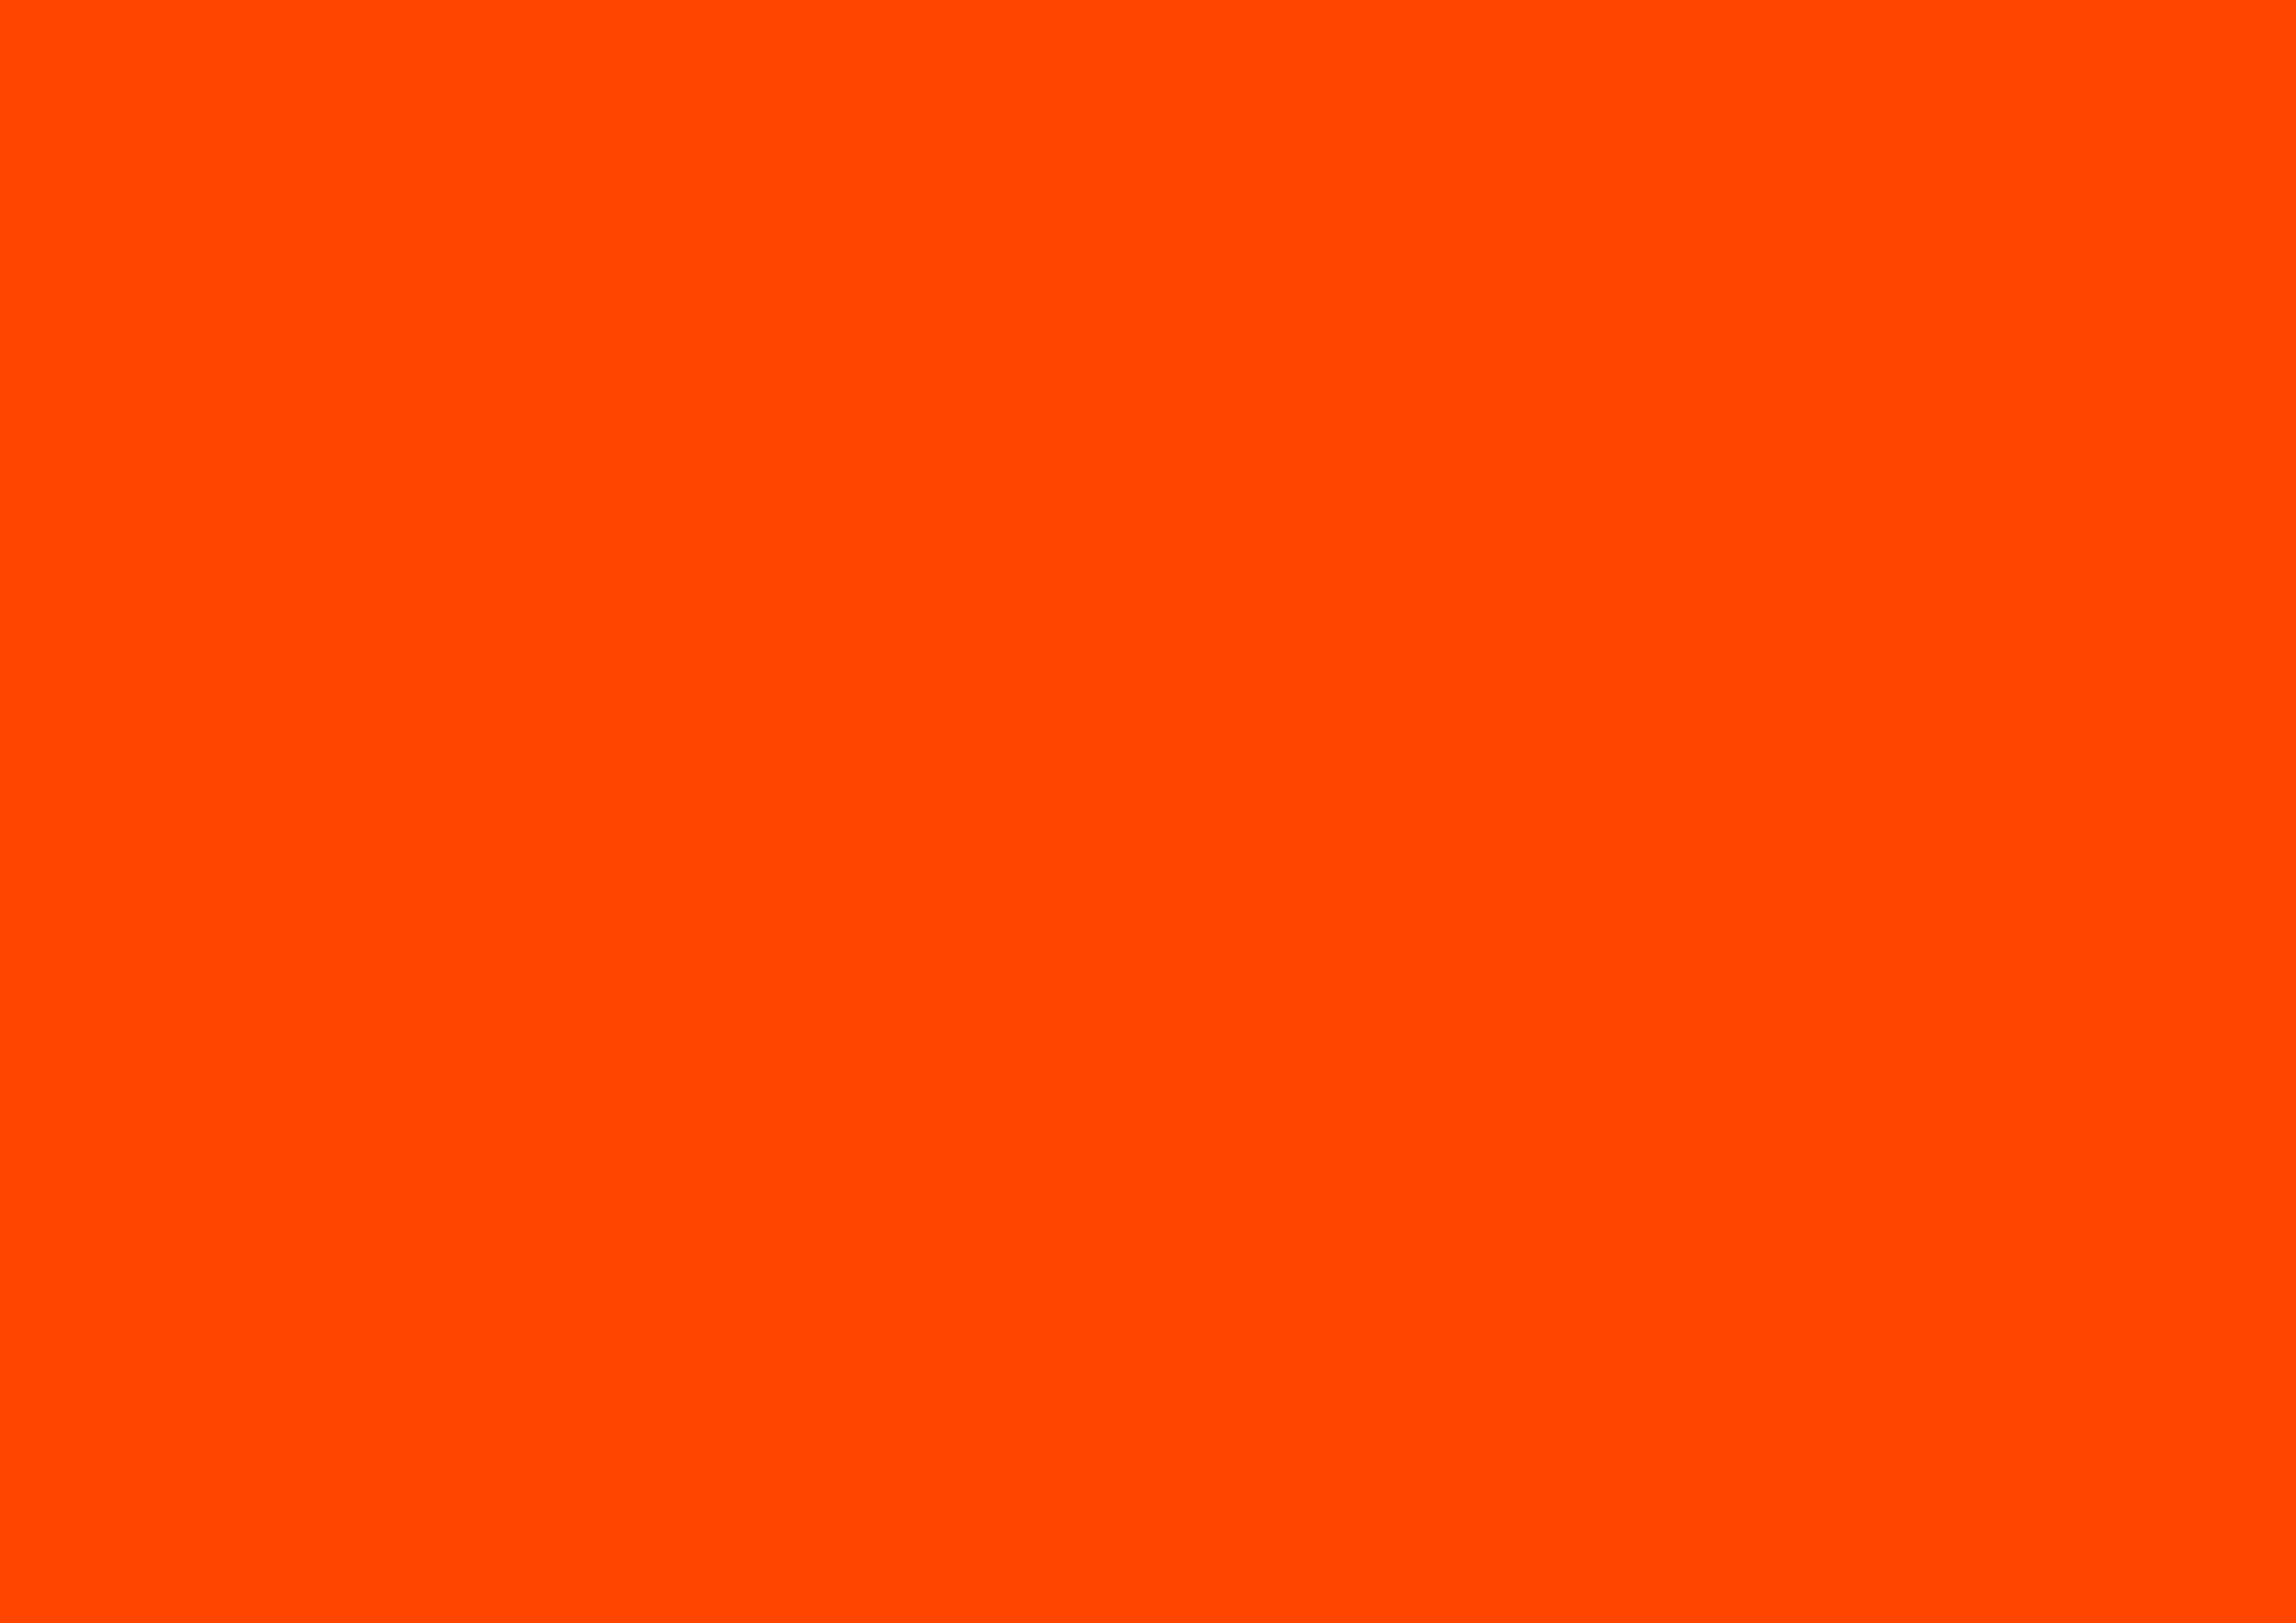 3508x2480 Orange-red Solid Color Background